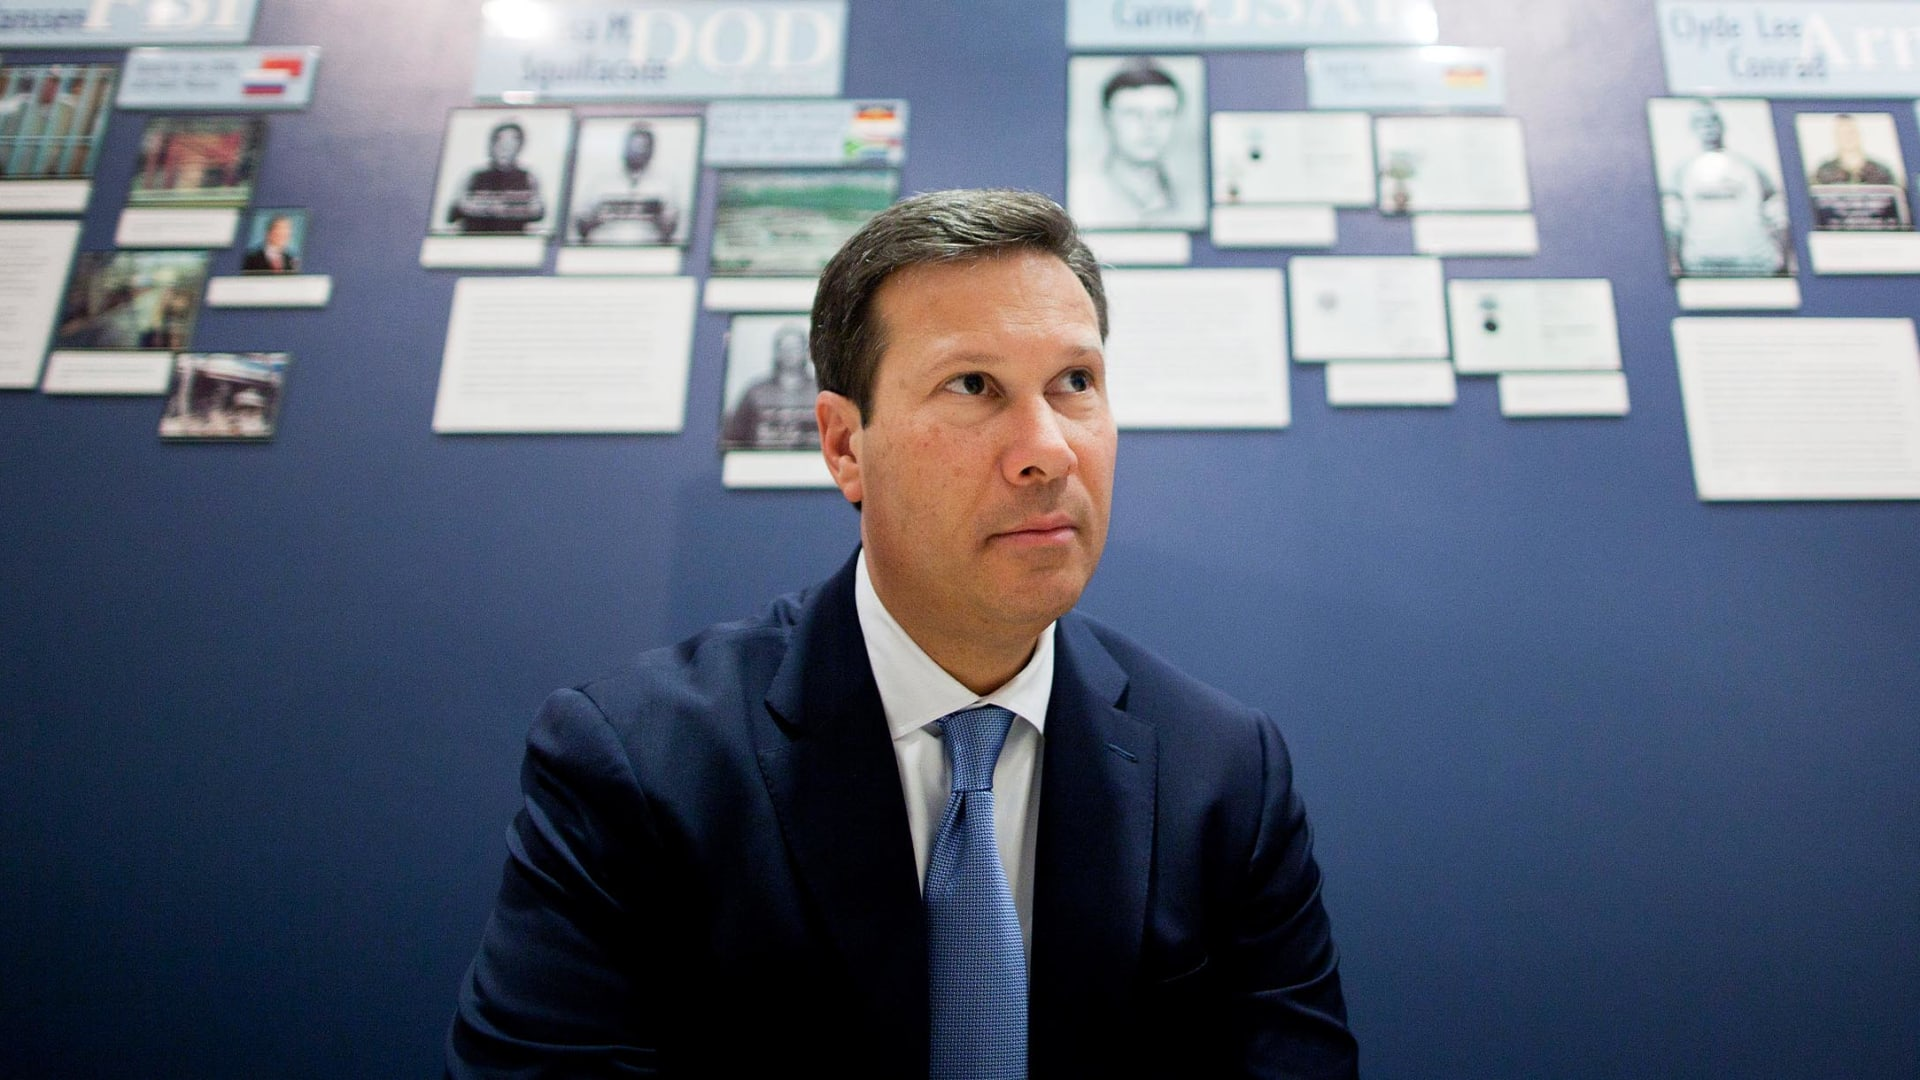 Frank Figliuzzi sits in front of a wall of convicted spy profiles at FBI headquarters in Washington, D.C.